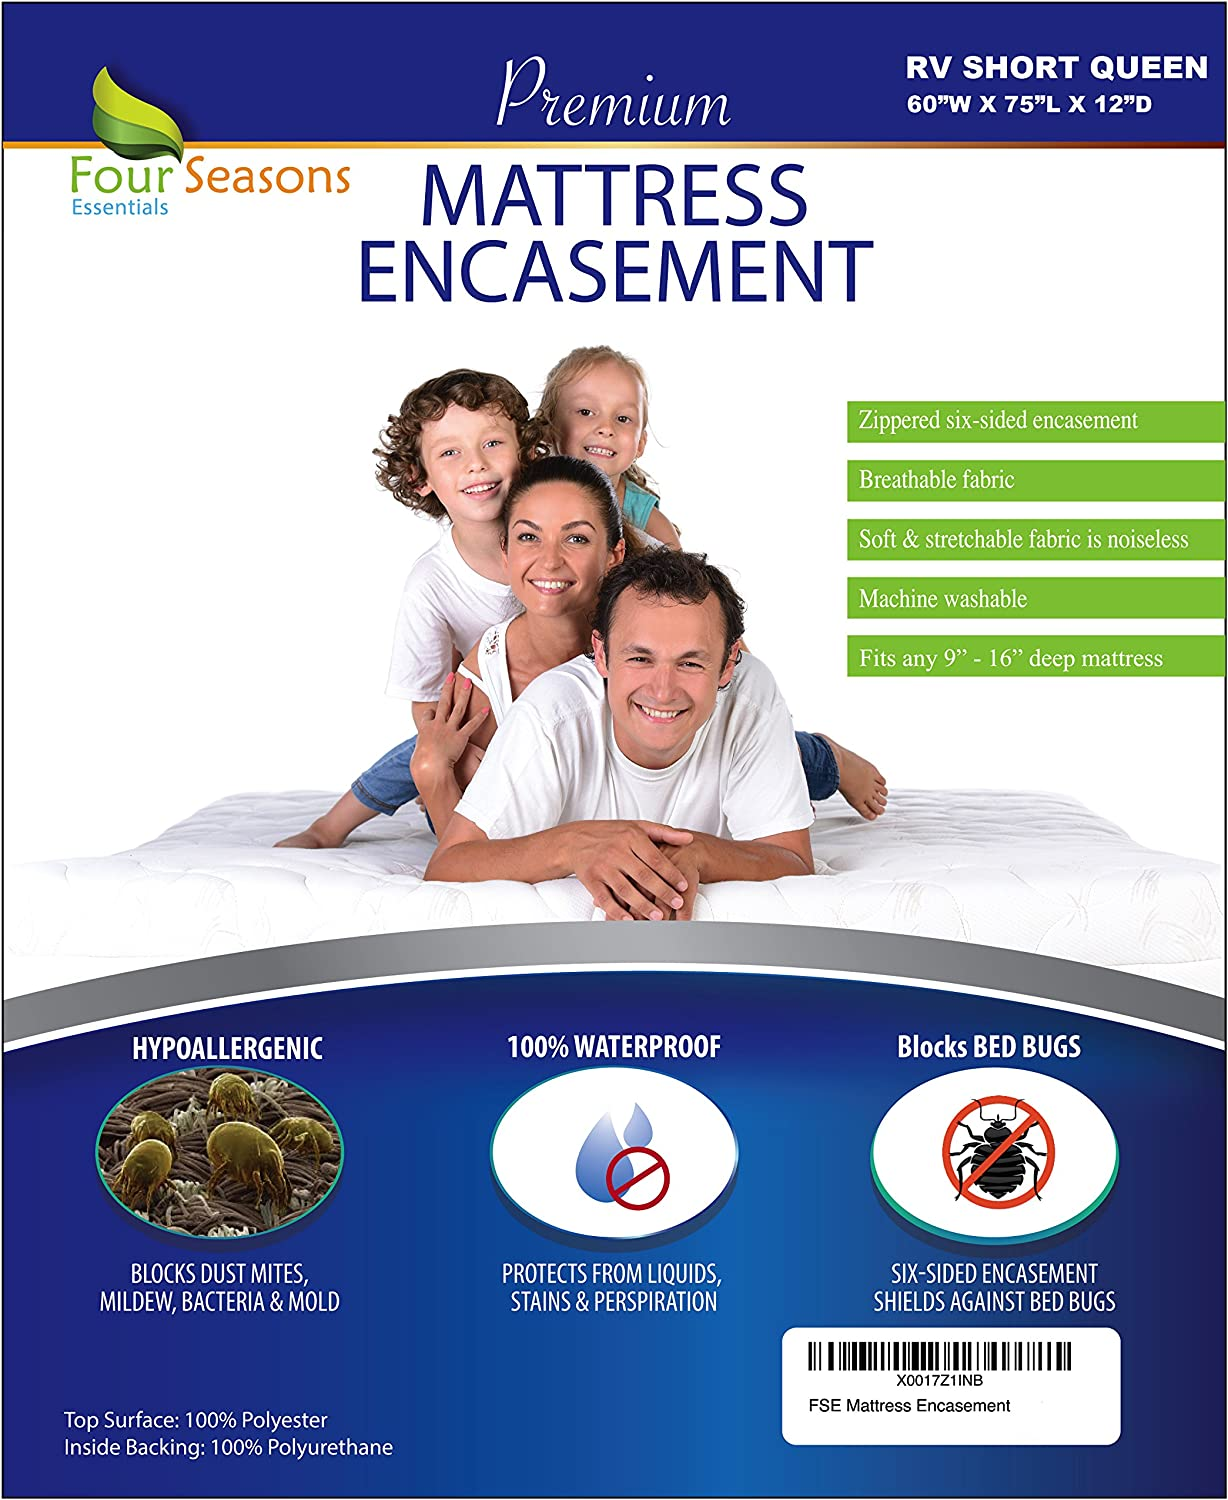 """RV Short Queen Mattress Protector (60"""" Wx75 L) Bedbug Waterproof Zippered Encasement Hypoallergenic Premium Quality Cover Protects Against Dust Mites Allergens"""